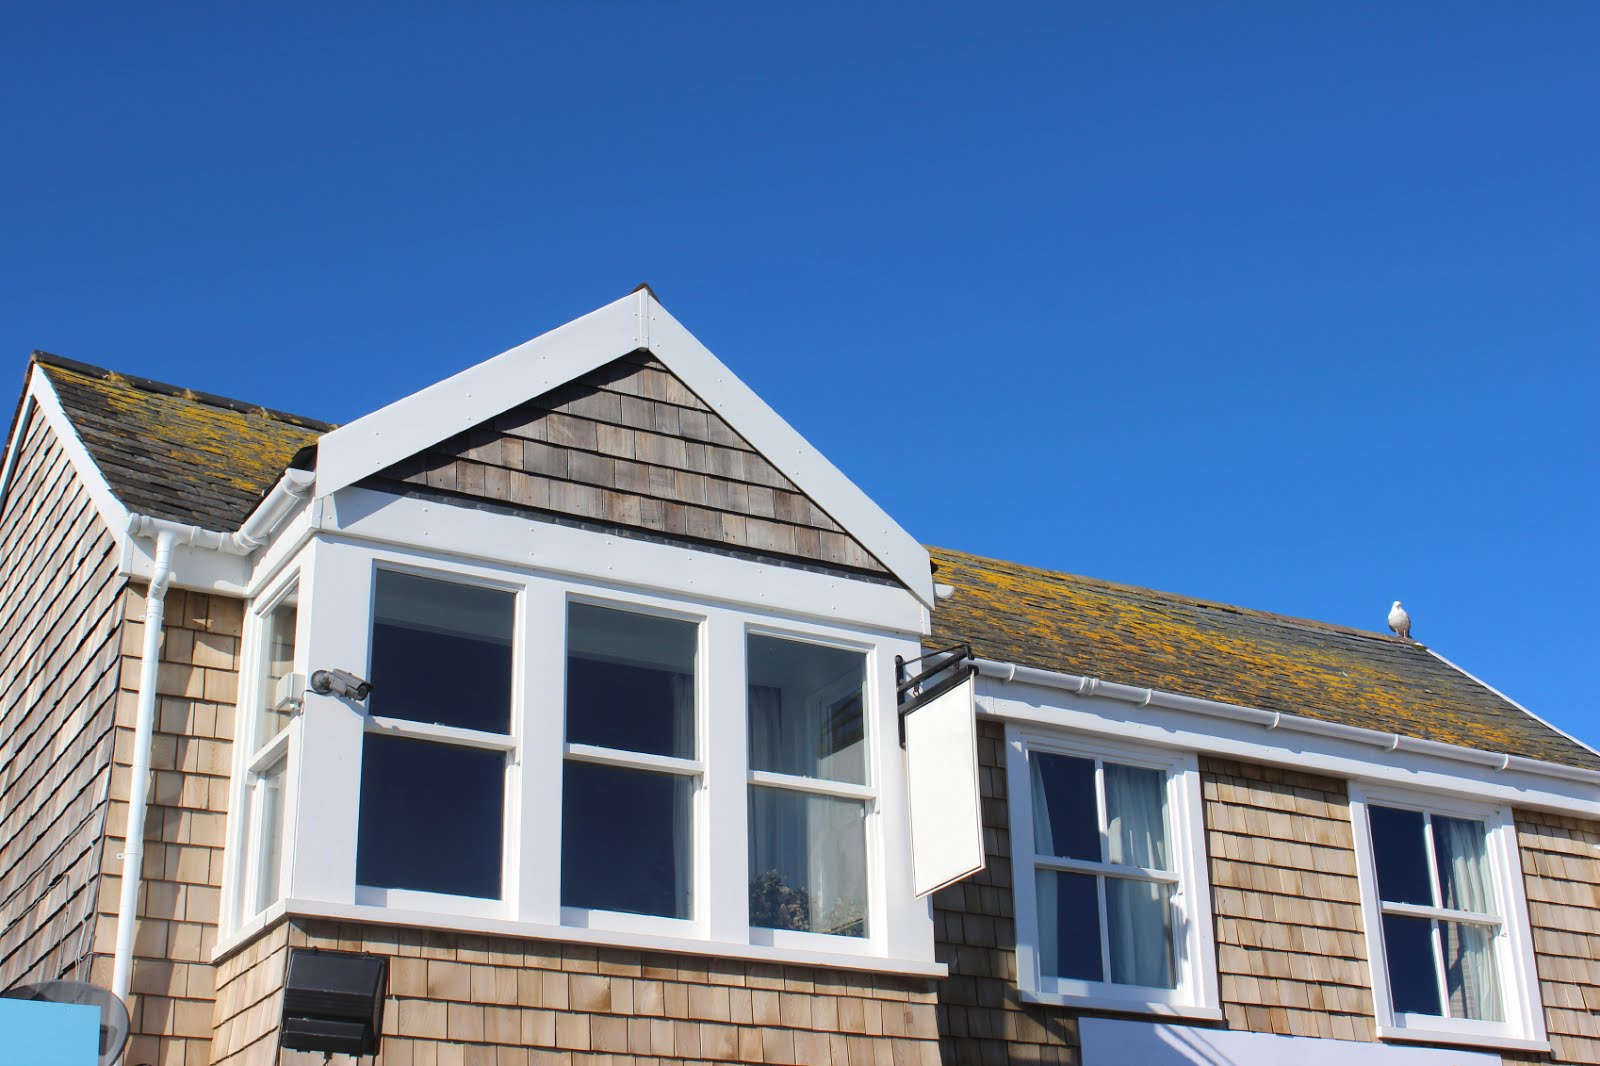 Phil S Main Roofing